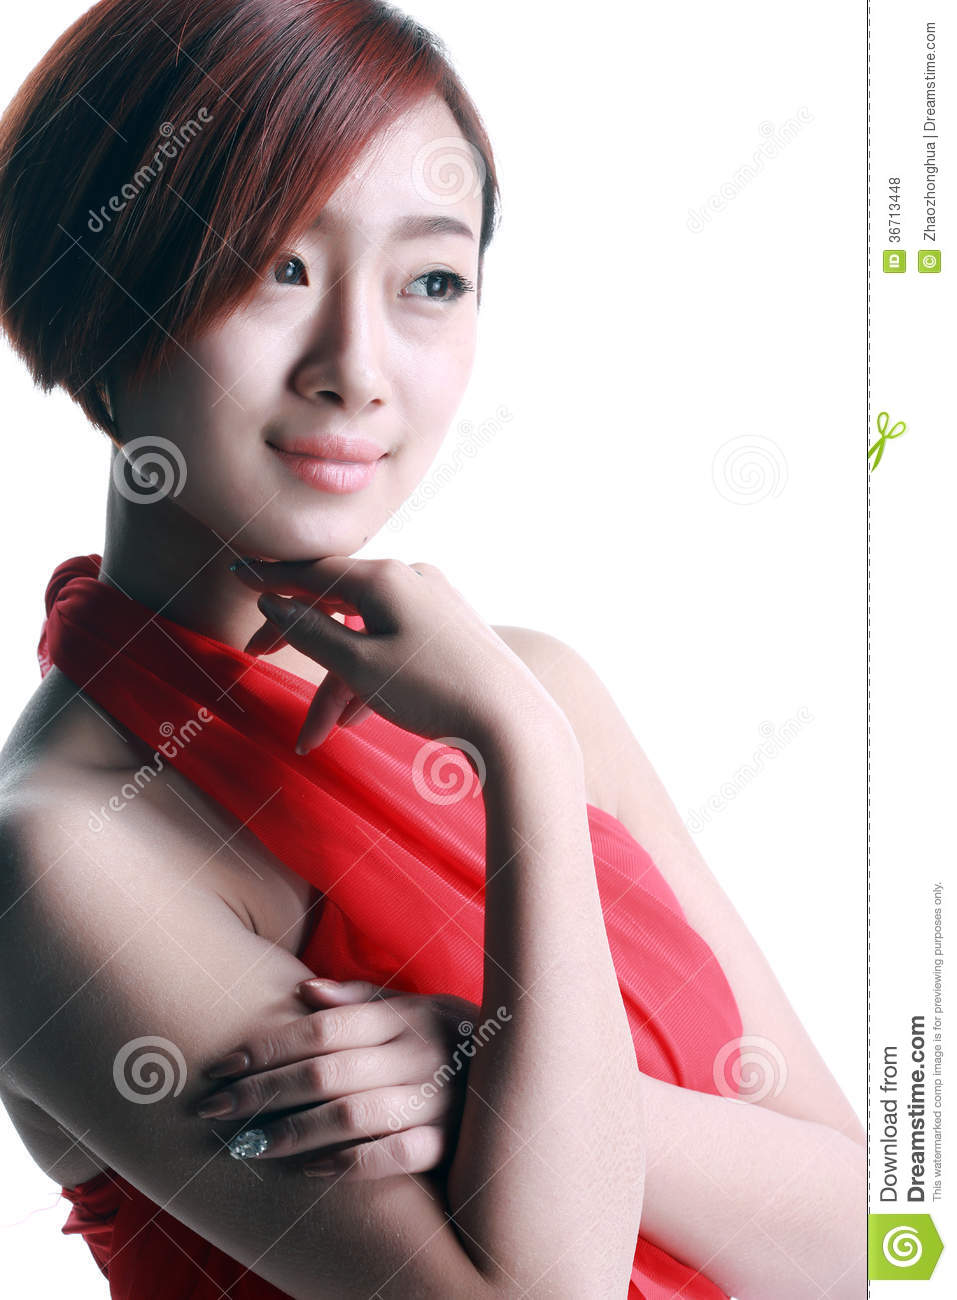 Chinese girl wearing a red dress royalty free stock photos image